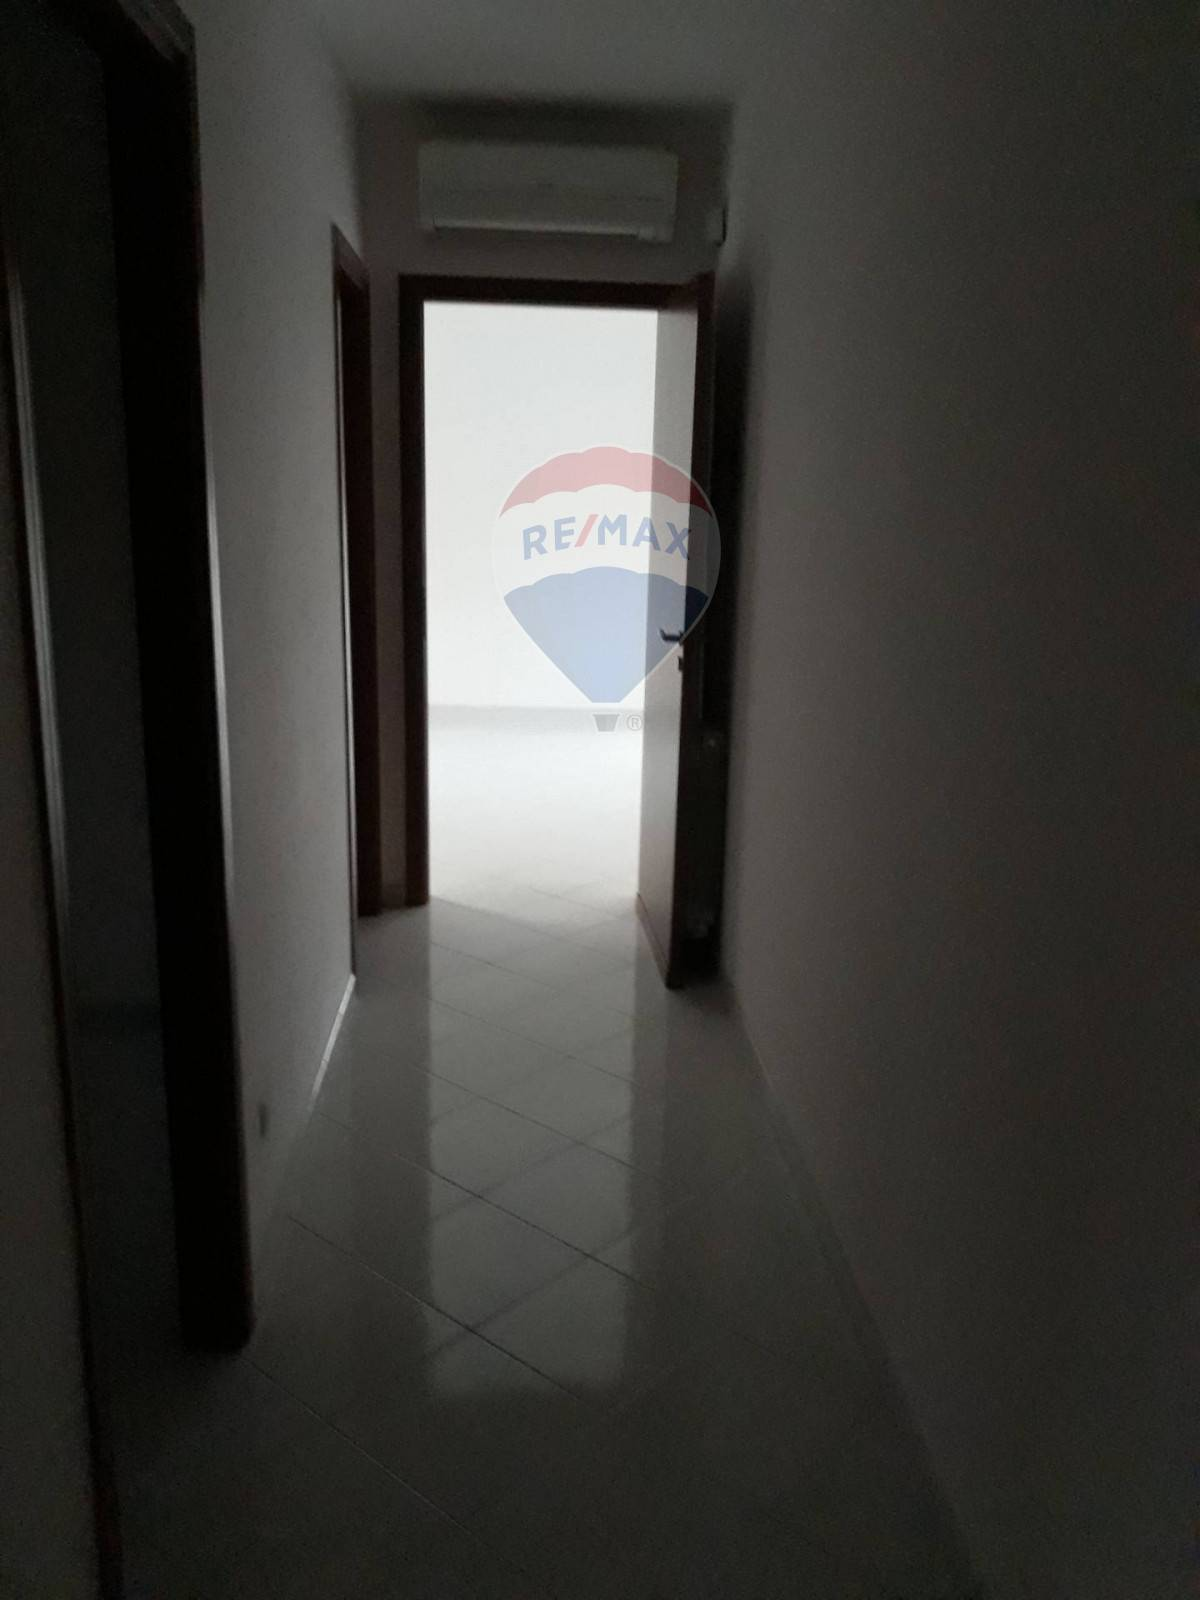 trapani affitto quart: zona pregiata re/max synergy